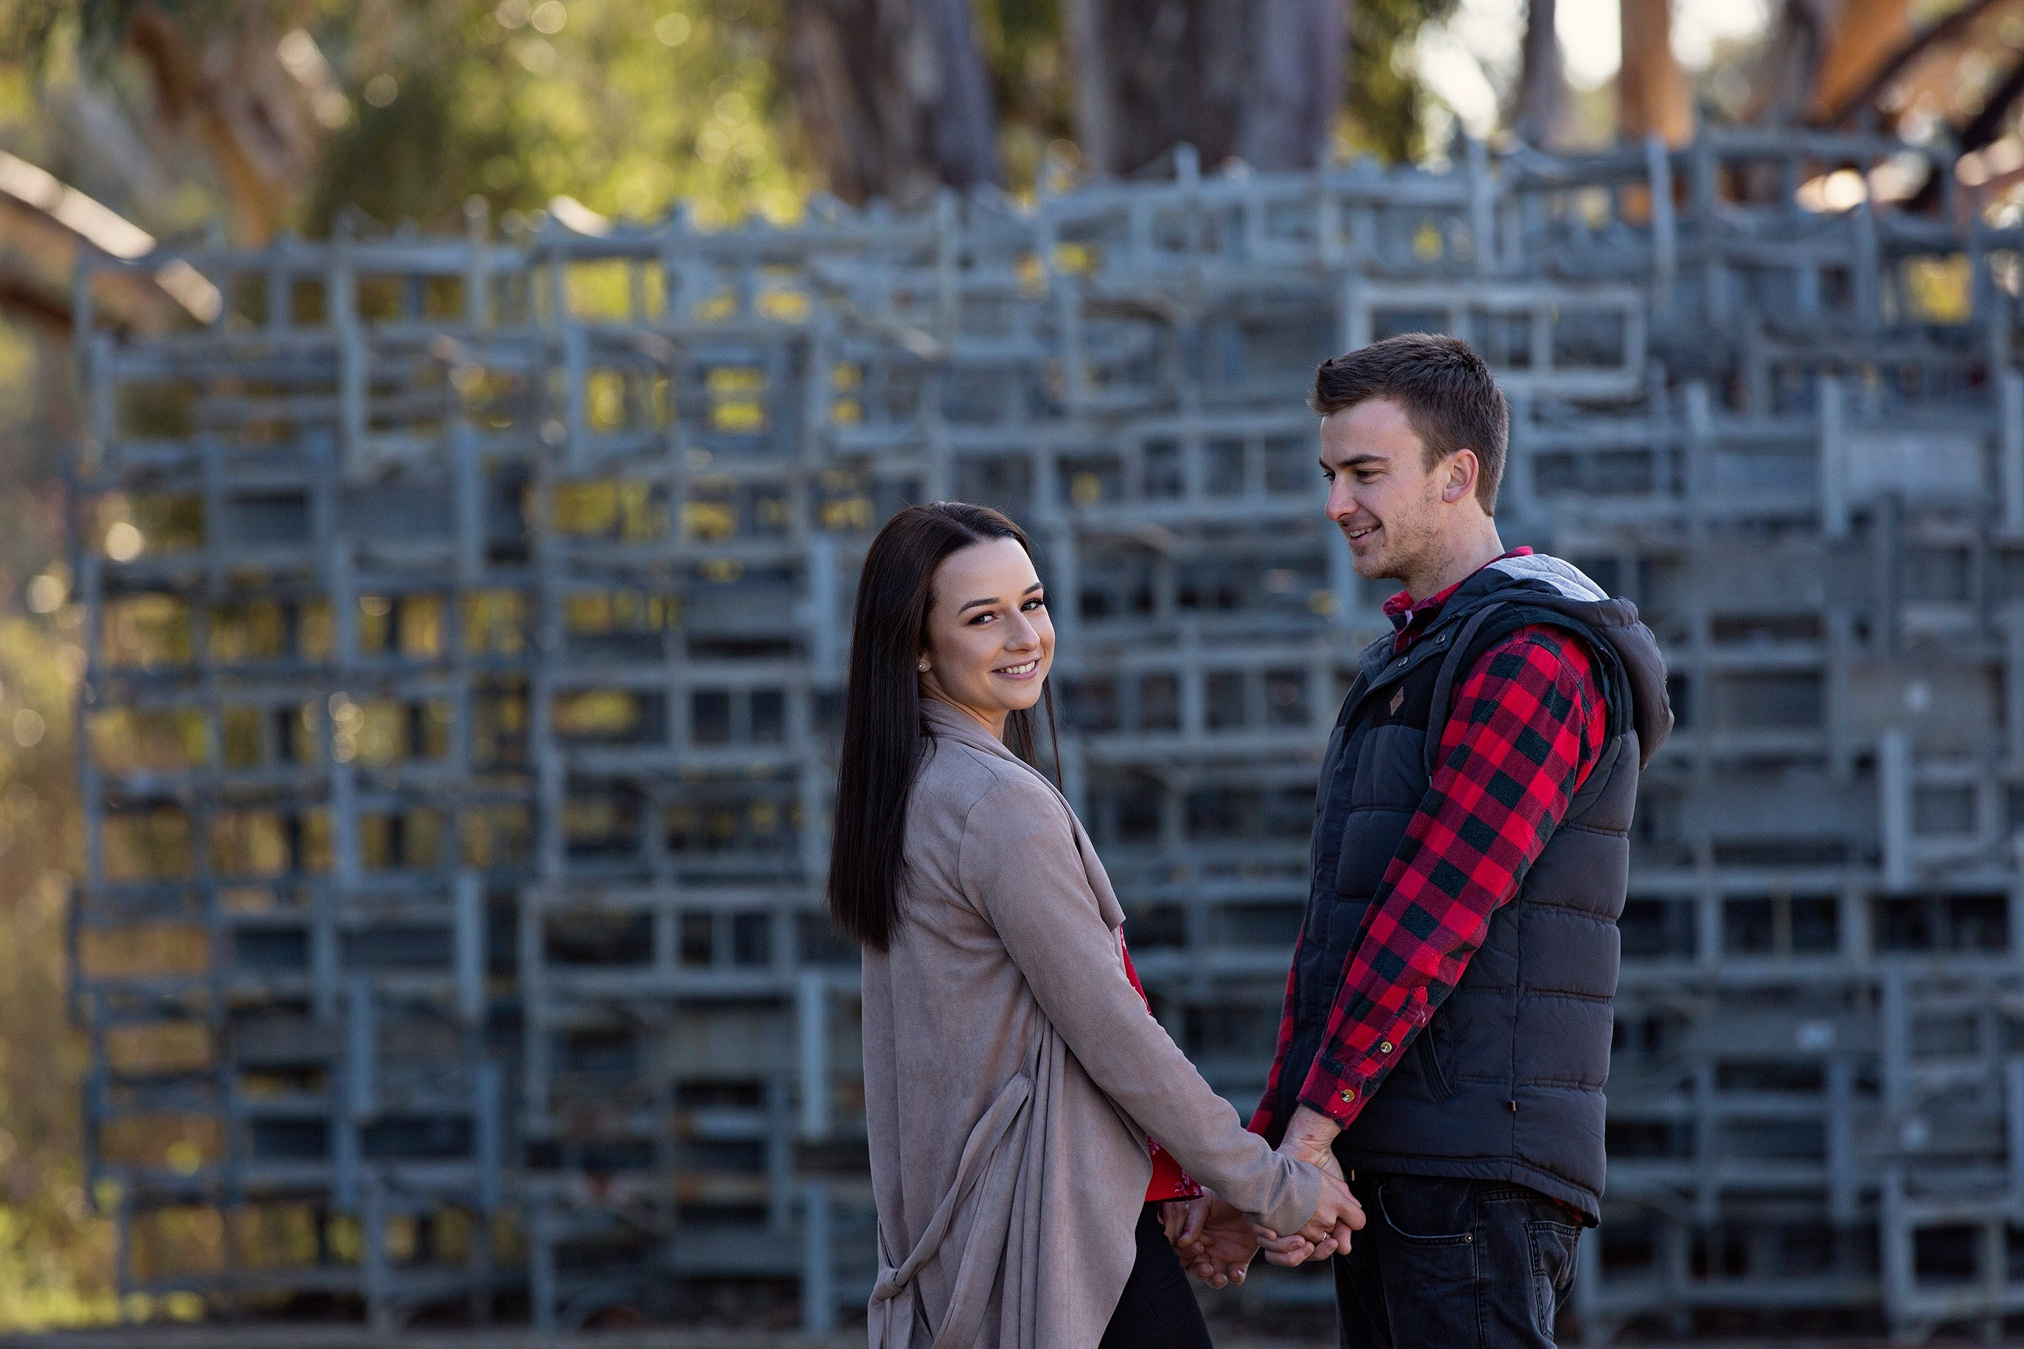 """Jess + Braeden - """"Leticia is AMAZING!!!! She did our engagement & wedding photos. She made us feel so relaxed, and made the entire experience so much fun! We are so happy with how our photos turned out! If your looking for a fantastic photography, you've made the right choice with Leticia!"""""""